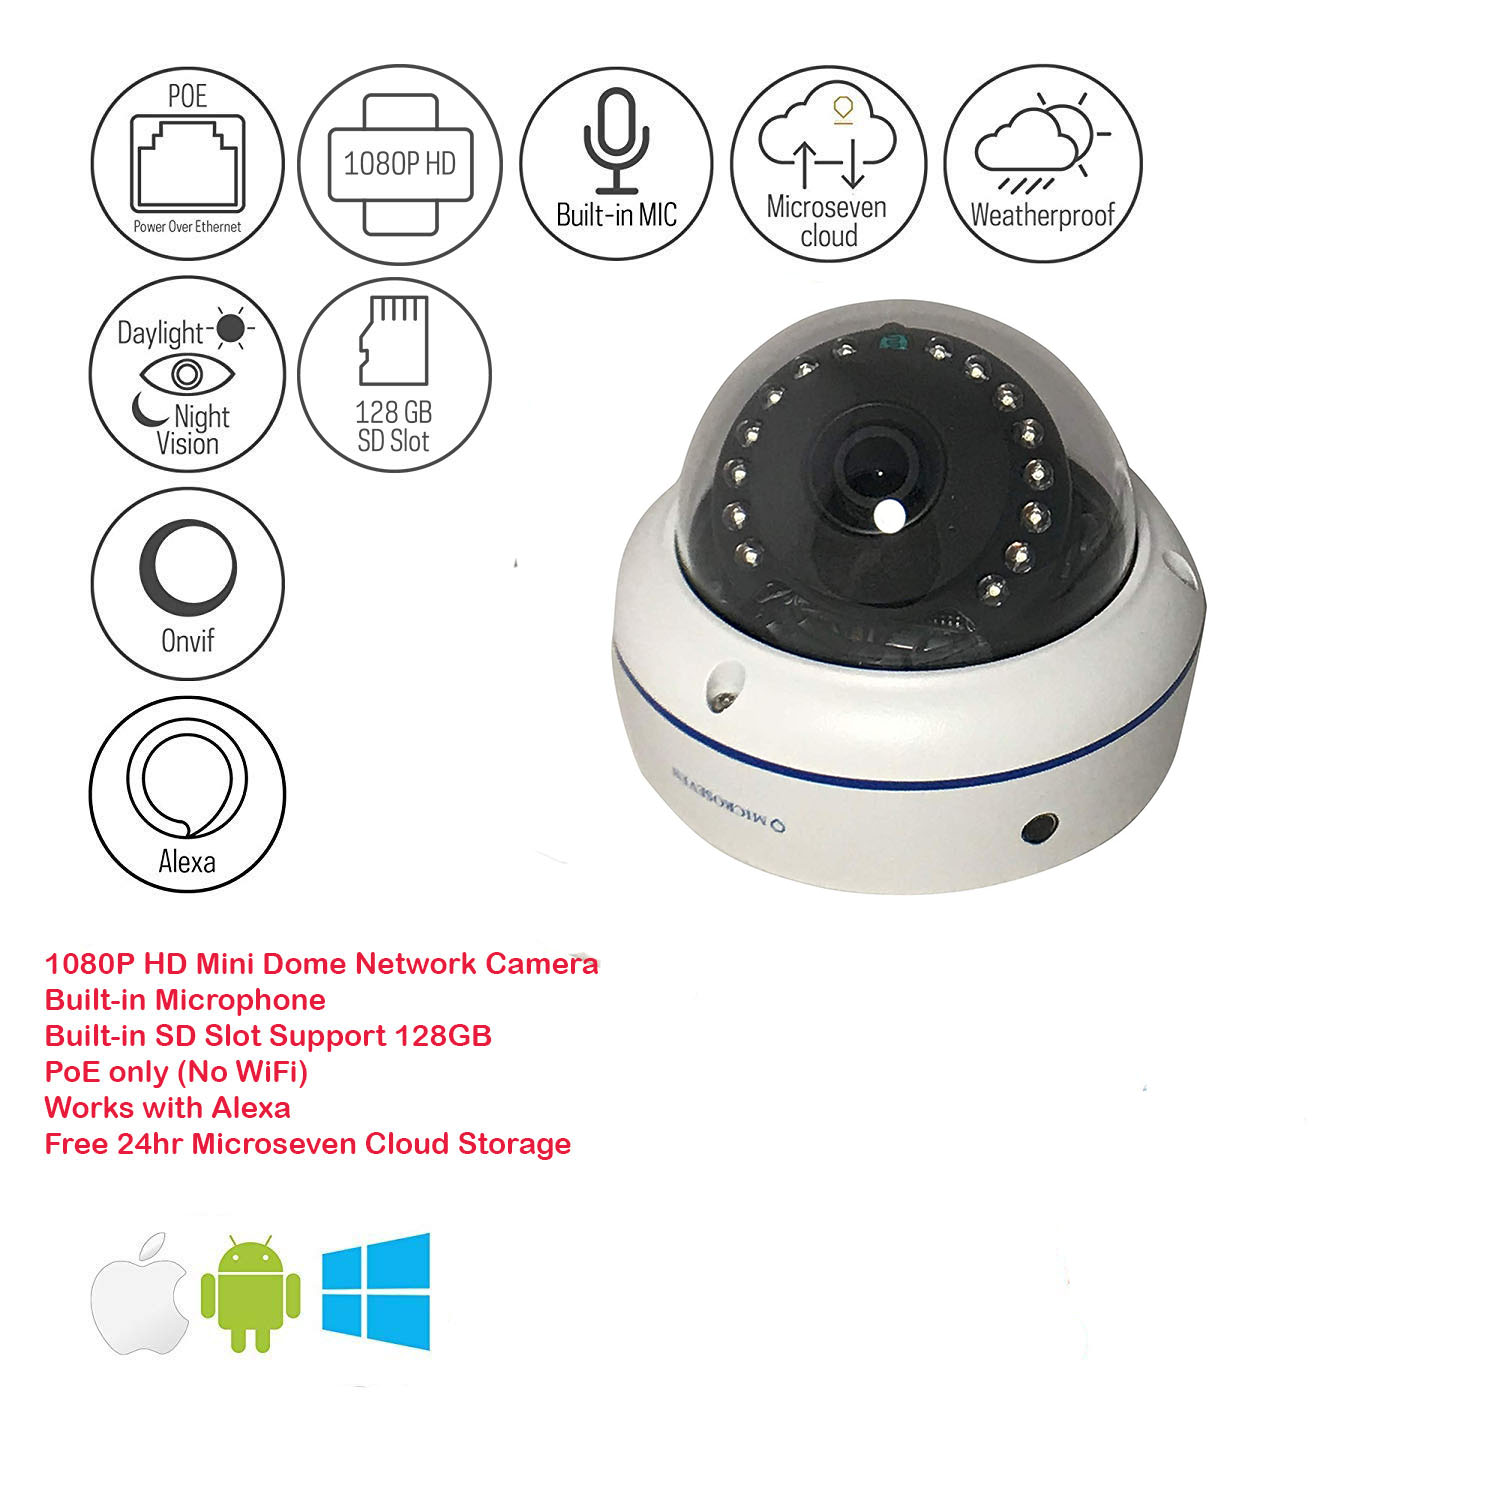 Microseven Open Source 1080P / 30fps Sony CMOS HD PoE Outdoor Camera, Works with Alexa, Night Vision Dome Camera, Wide Angle, IR Motion Detection IP Camera, CCTV Surveillance IP Camera, WaterProof Security Camera, 128GB SD Card Slot, Audio with Build-in Microphone, IP66, ONVIF, Web GUI & Apps, VMS (Video Management System), Free 24Hr Cloud Storage, Free Live Streaming on Microseven.tv